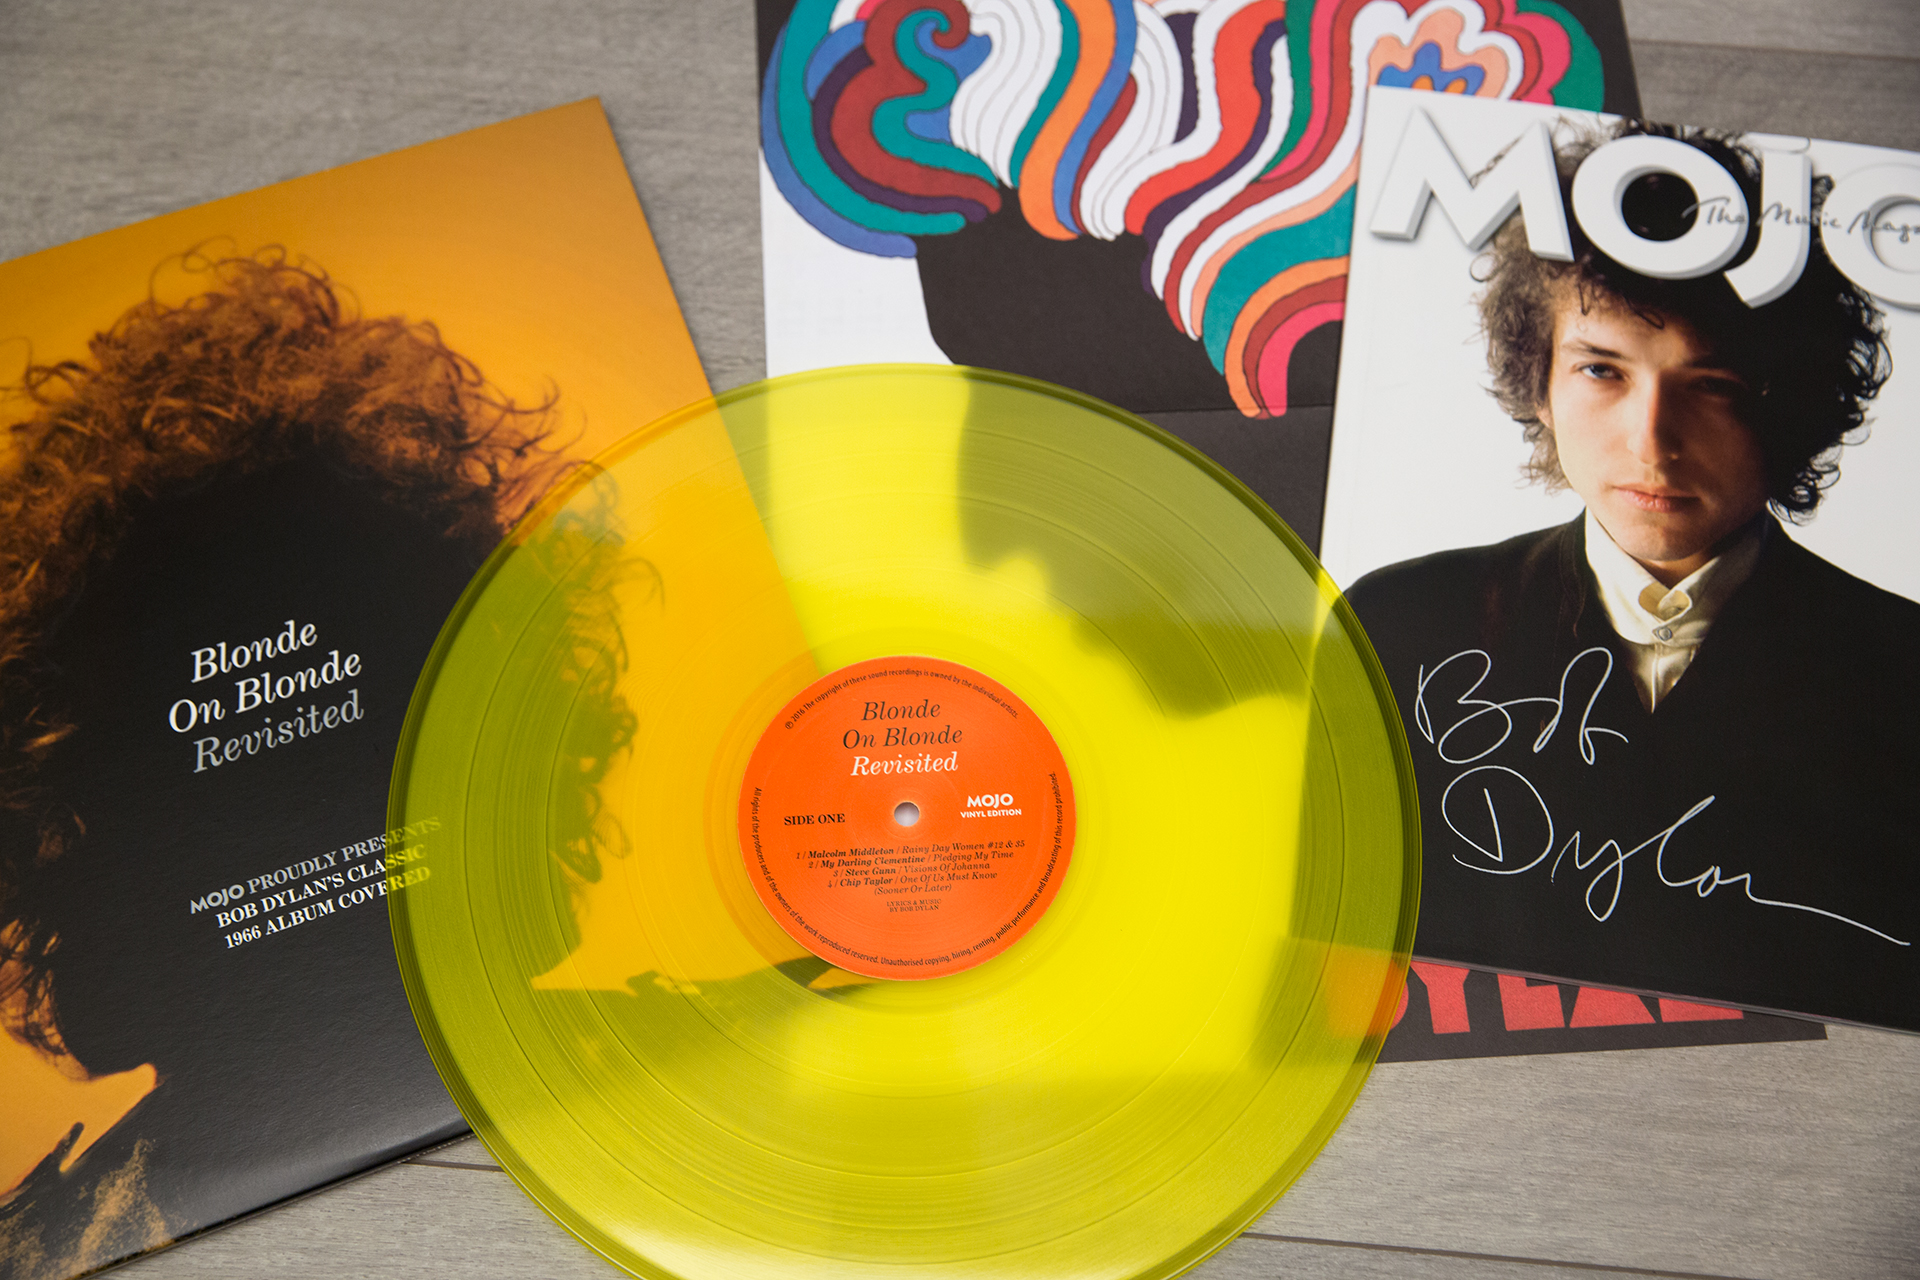 Bob Dylan Blonde on Blonde_By Moody Man via Flickr bajo Licencia Creative Commons.